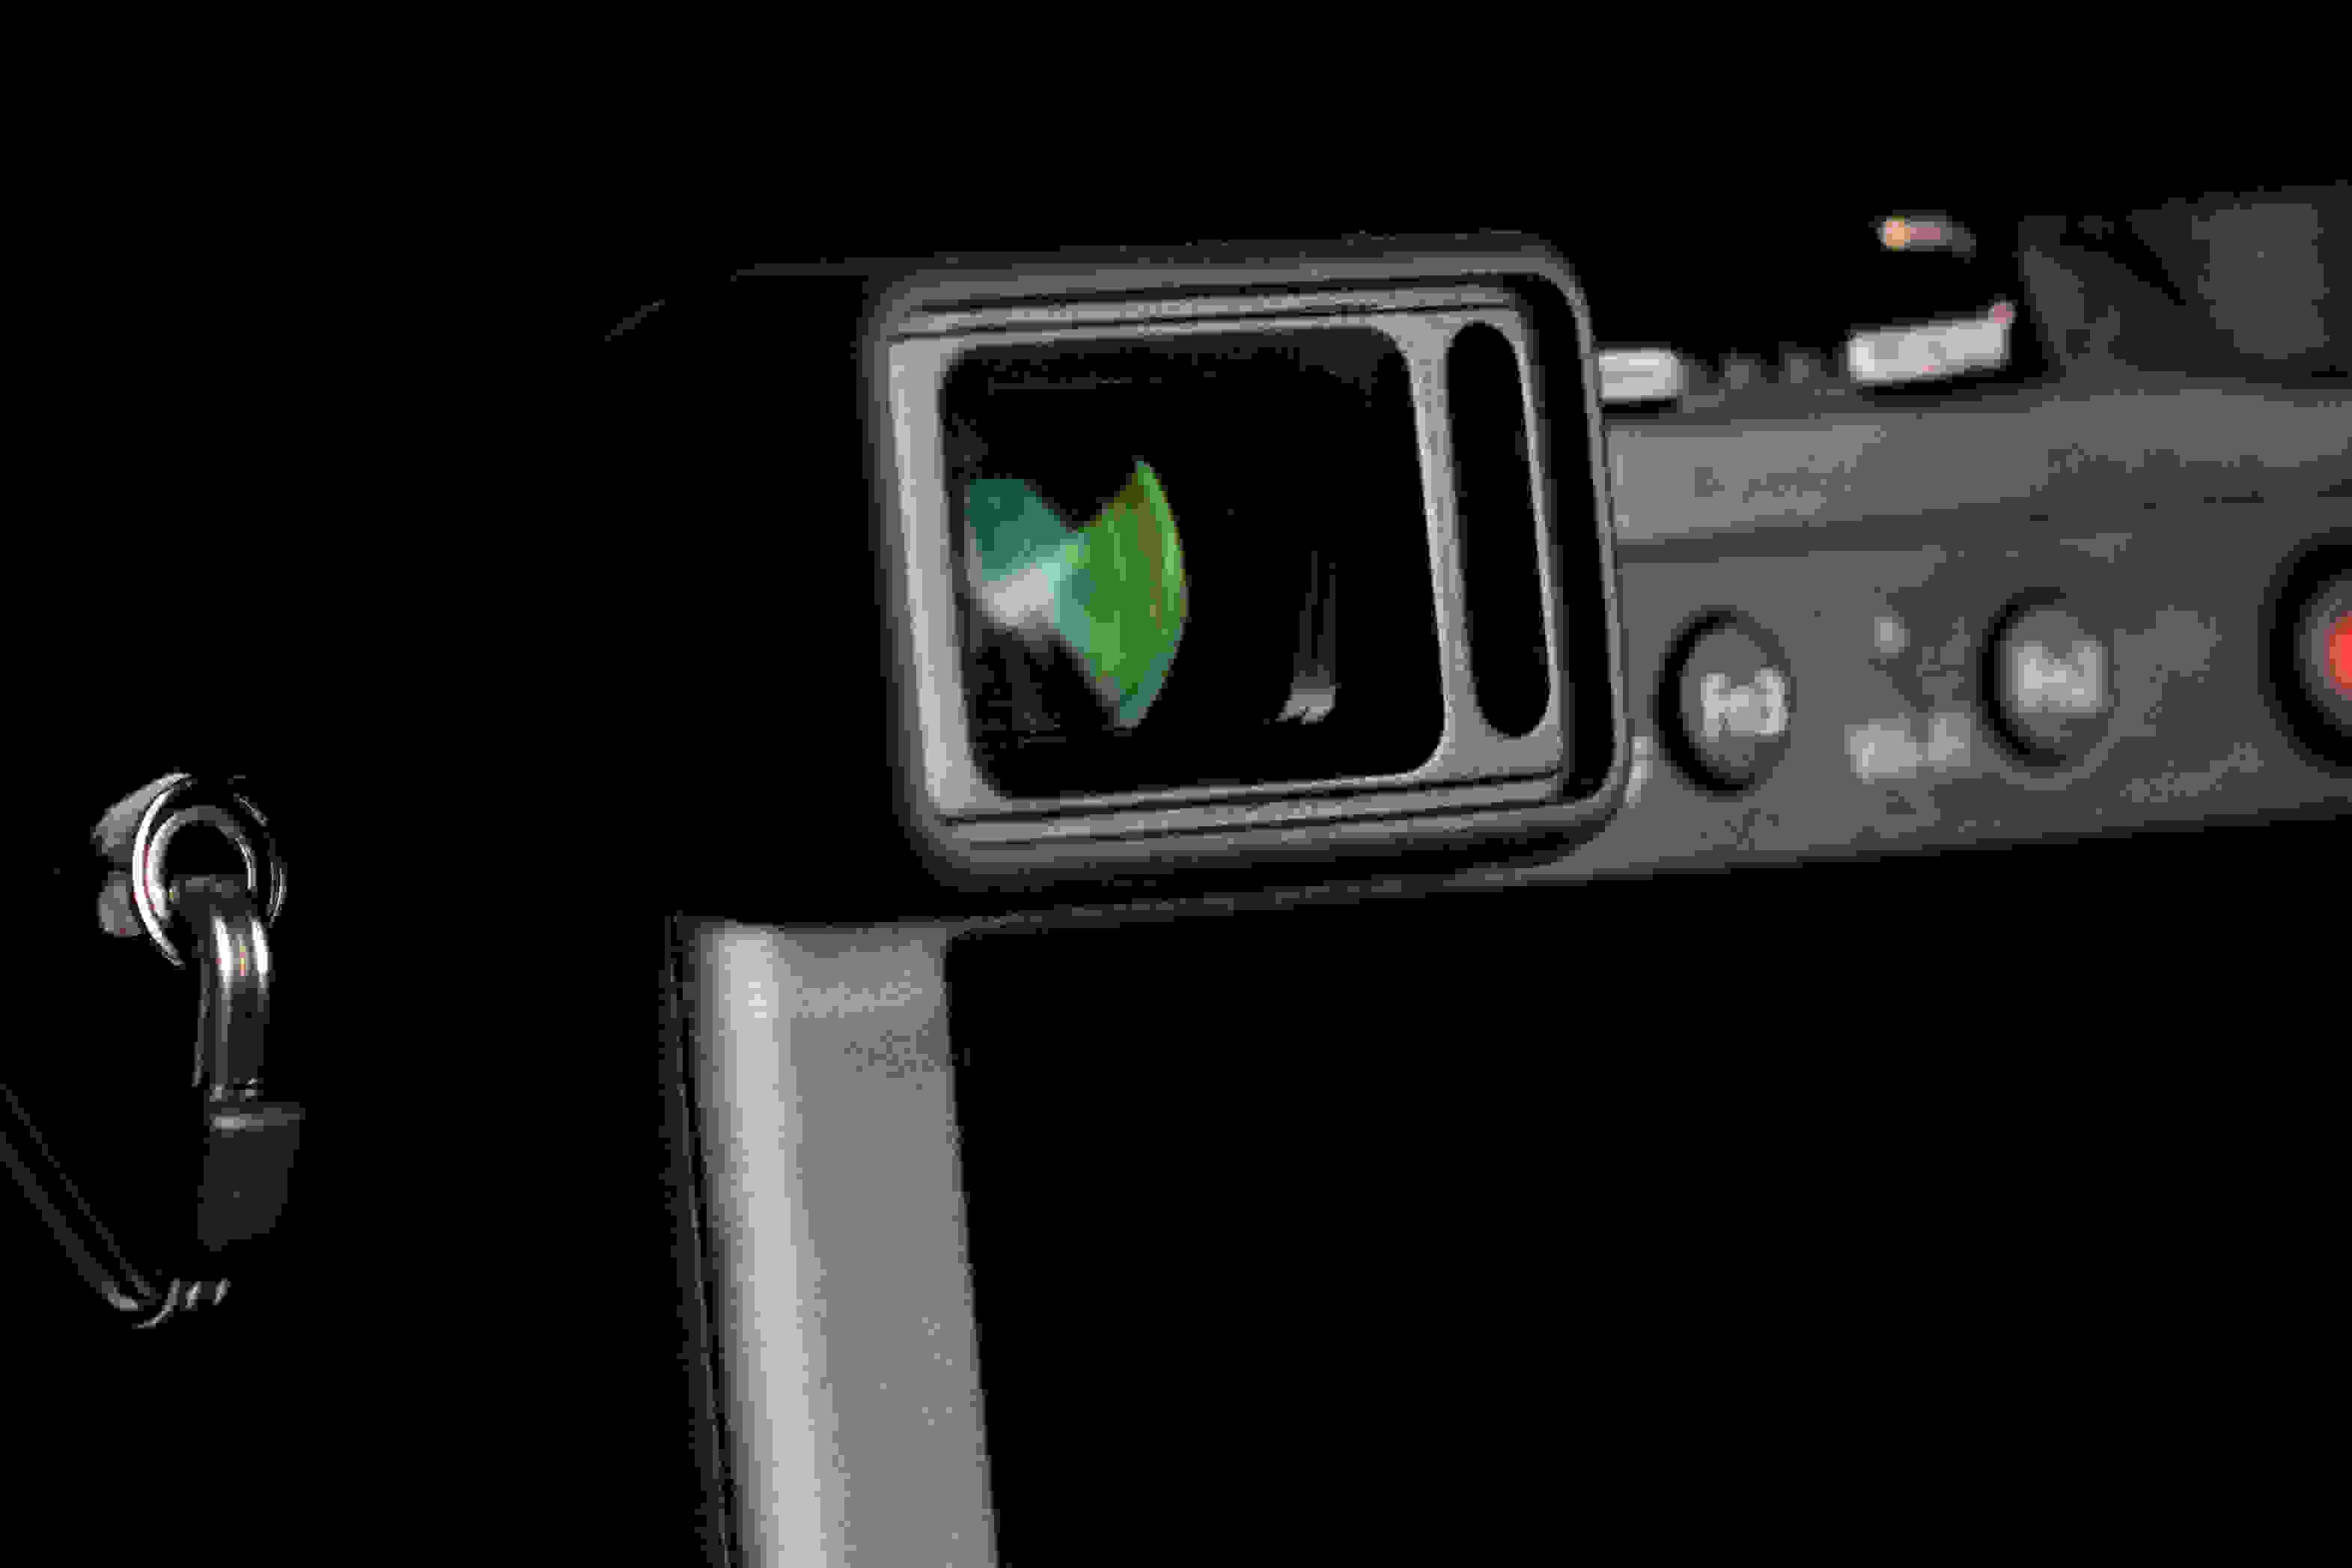 A photograph of the Panasonic Lumix LX100's electronic viewfinder.